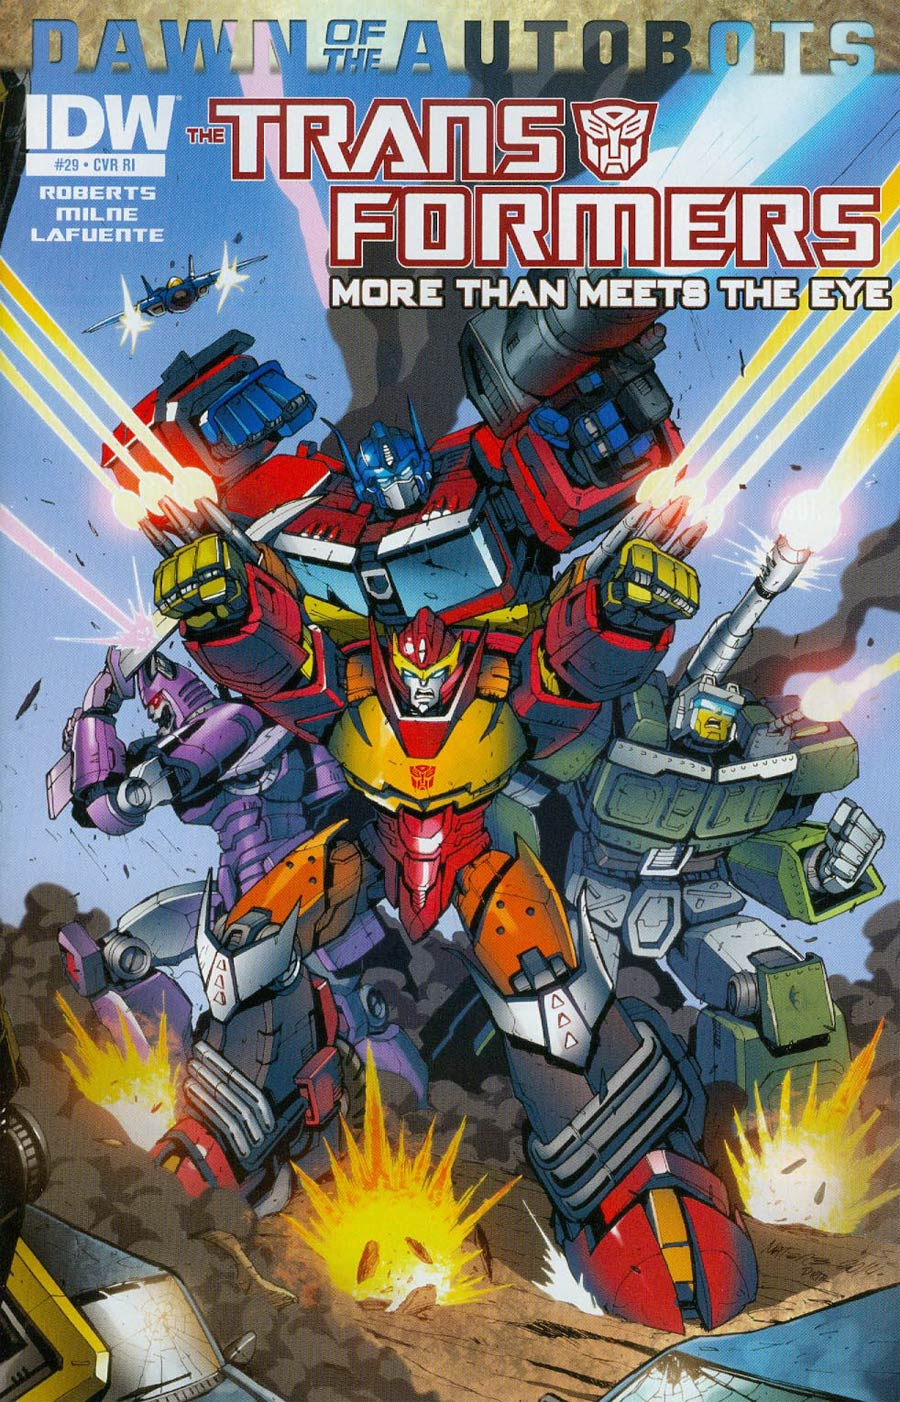 Transformers More Than Meets The Eye #29 Cover C Marcelo Matere Connecting Variant Cover (Dawn Of The Autobots Tie-In)